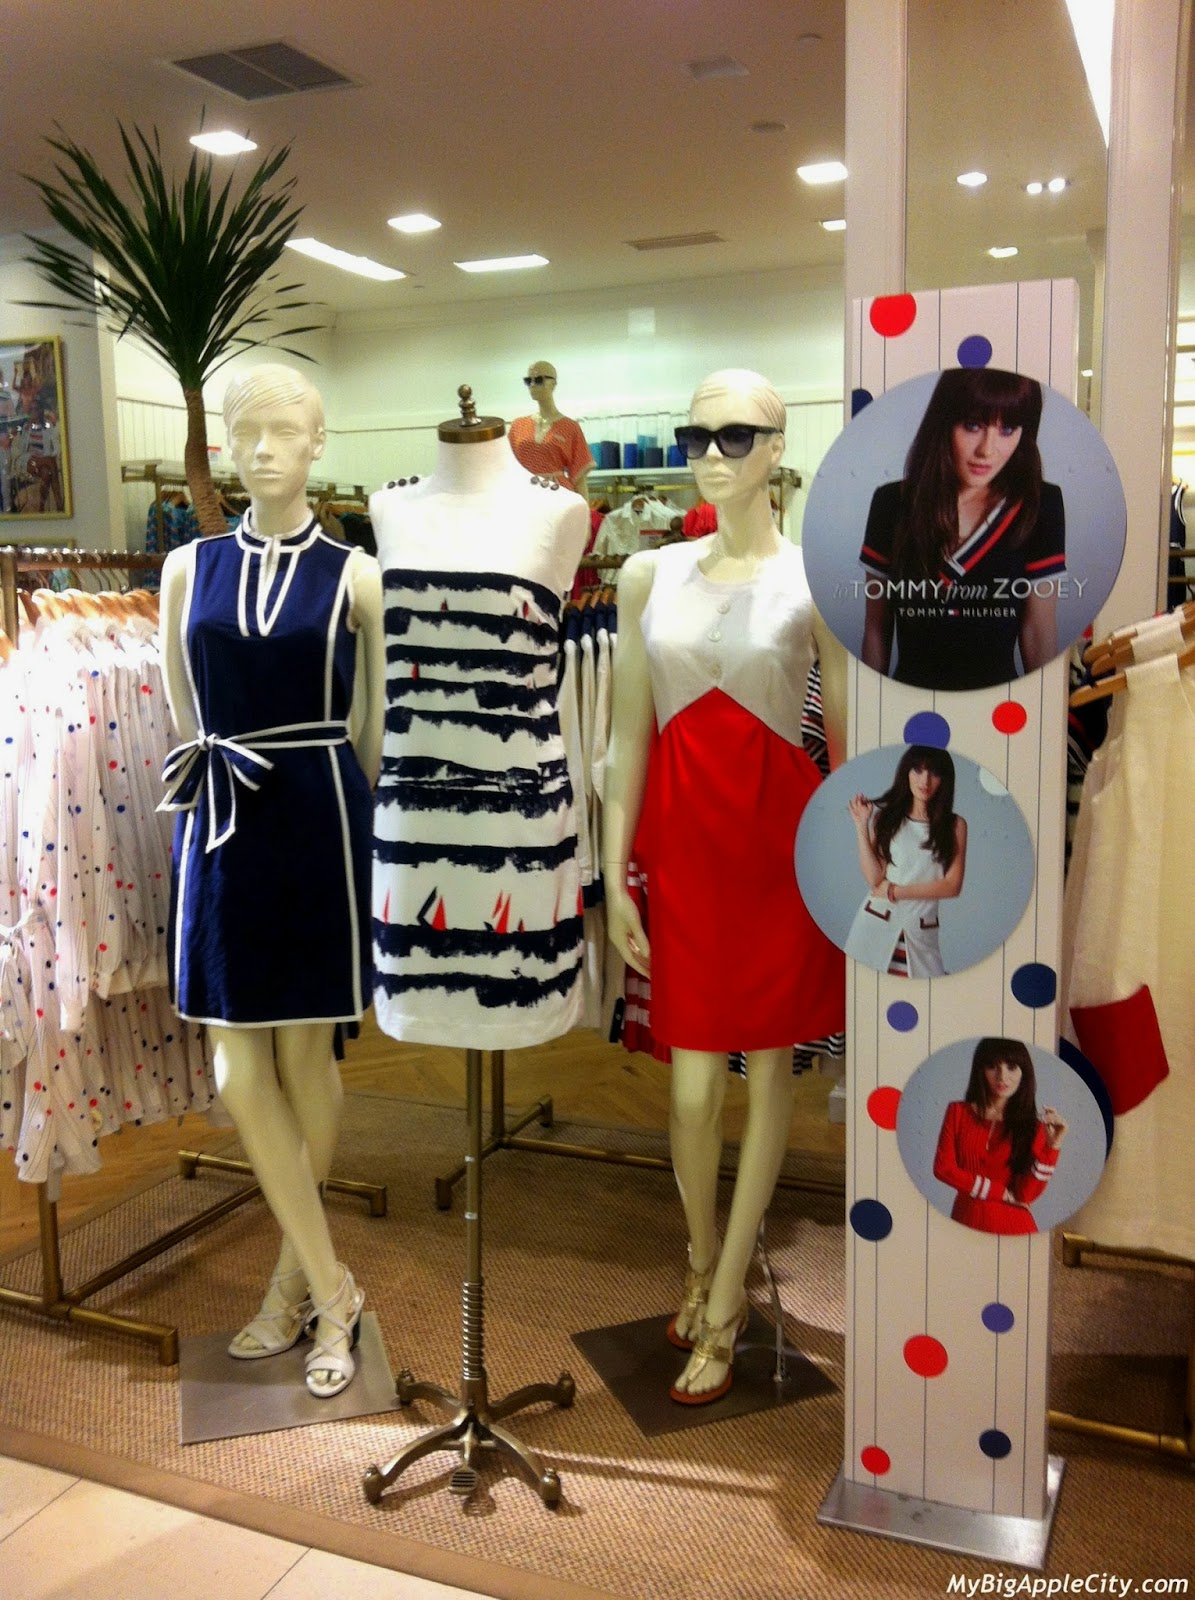 macys-zooey-hilfiger-collection-nyc